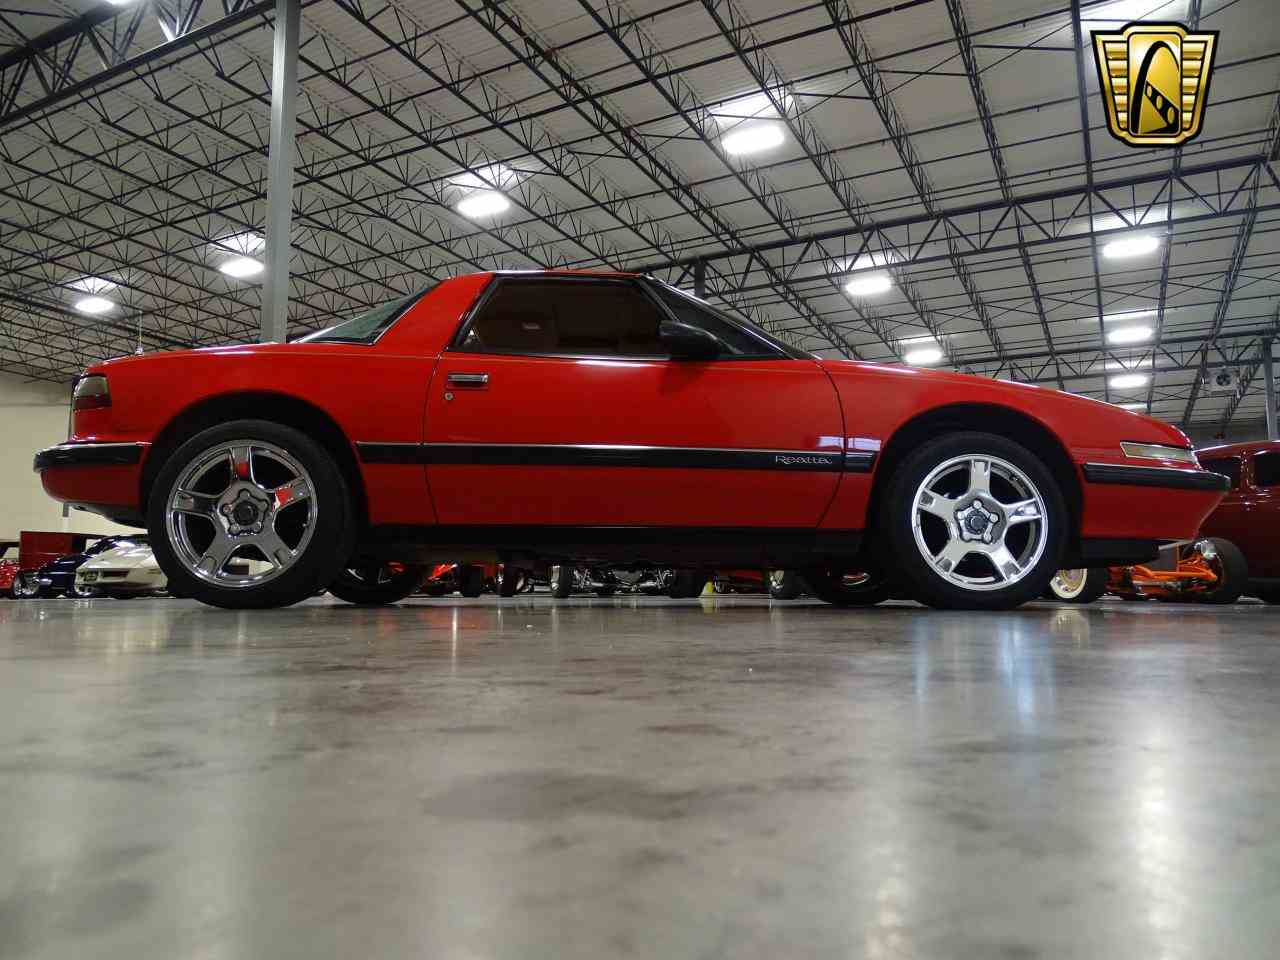 Large Picture of '90 Buick Reatta located in DFW Airport Texas Offered by Gateway Classic Cars - Dallas - KOB1